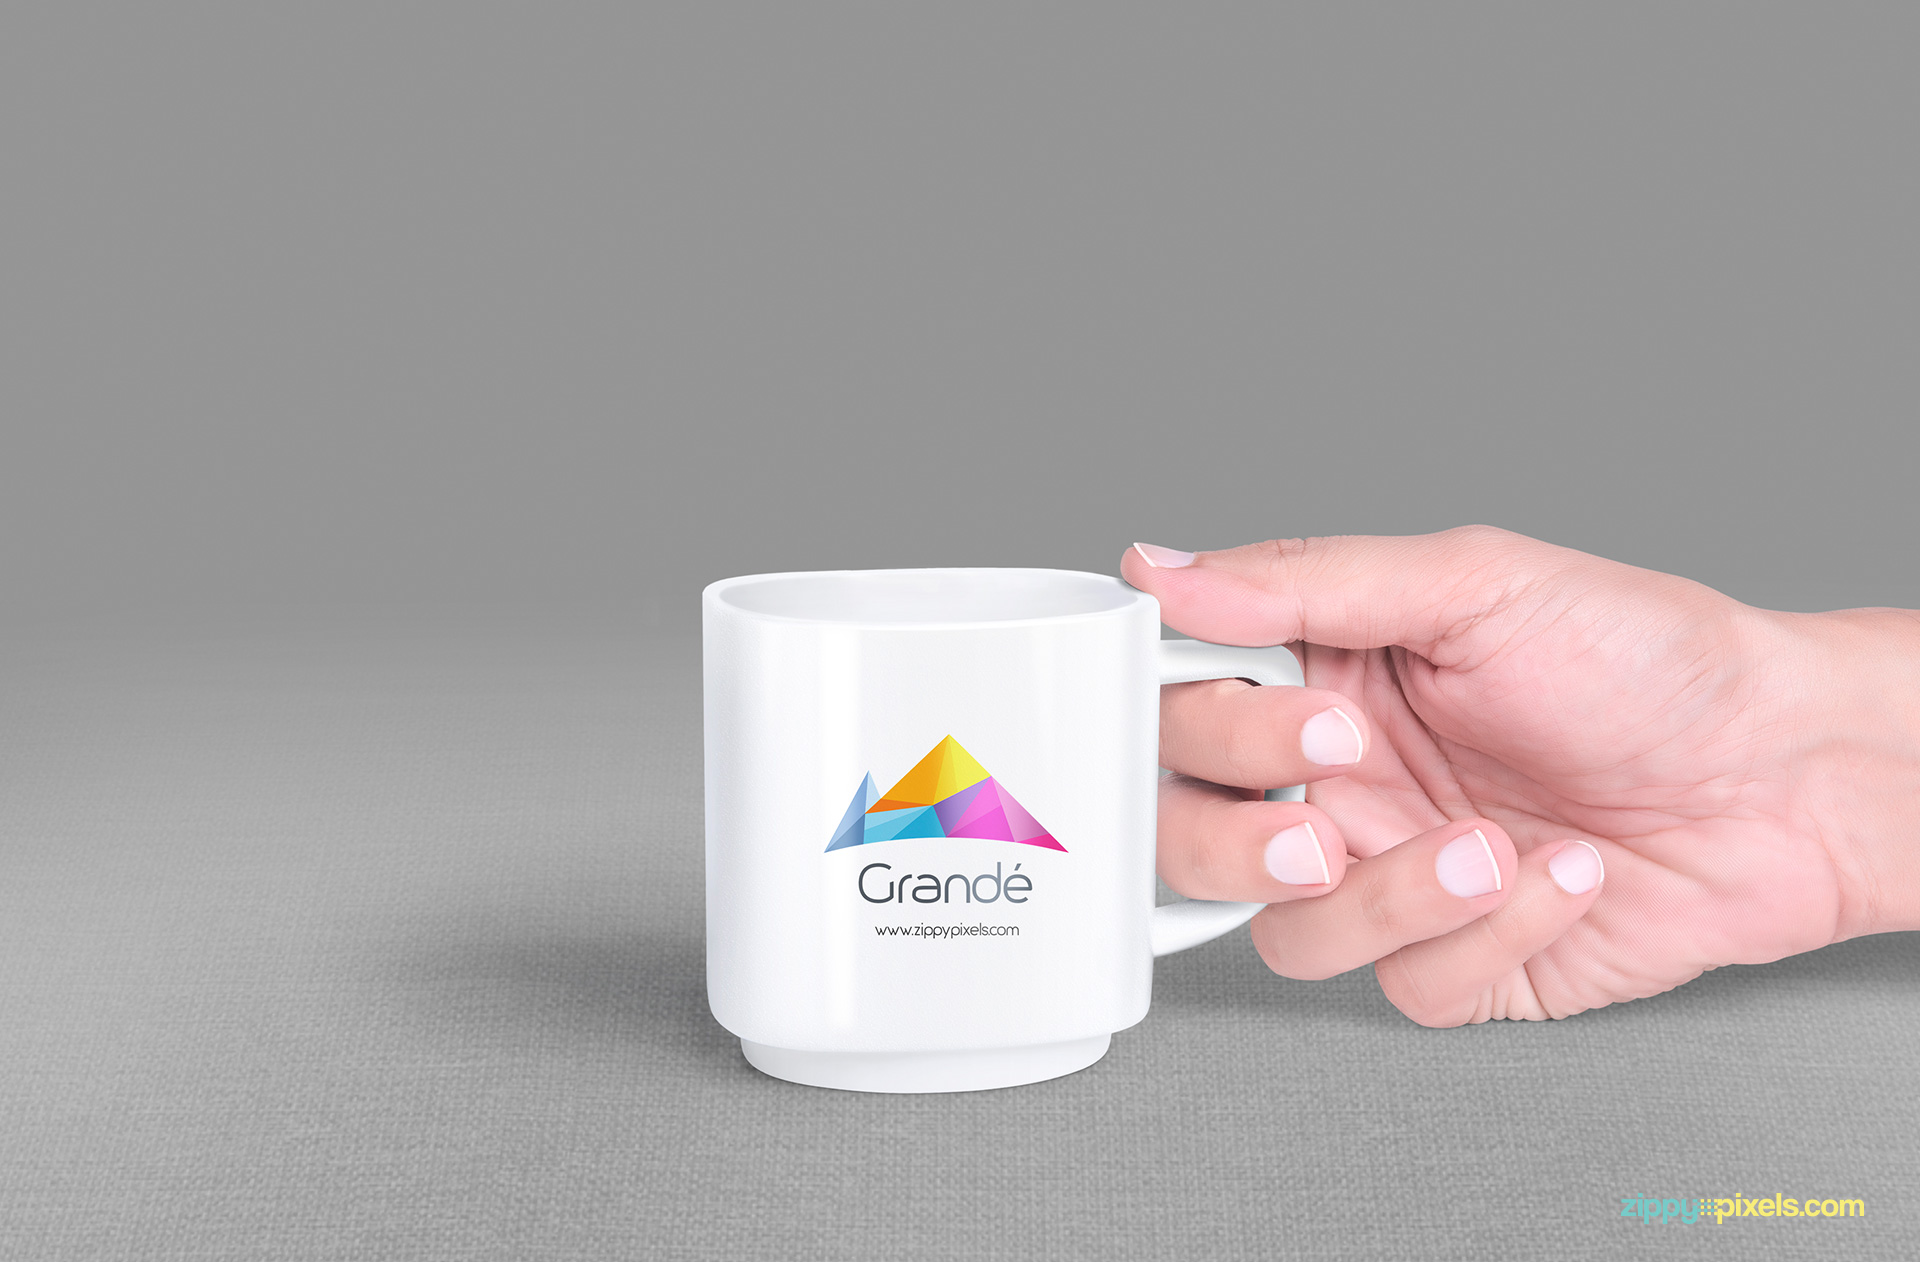 psd mug mockup to showcase your brand identity.